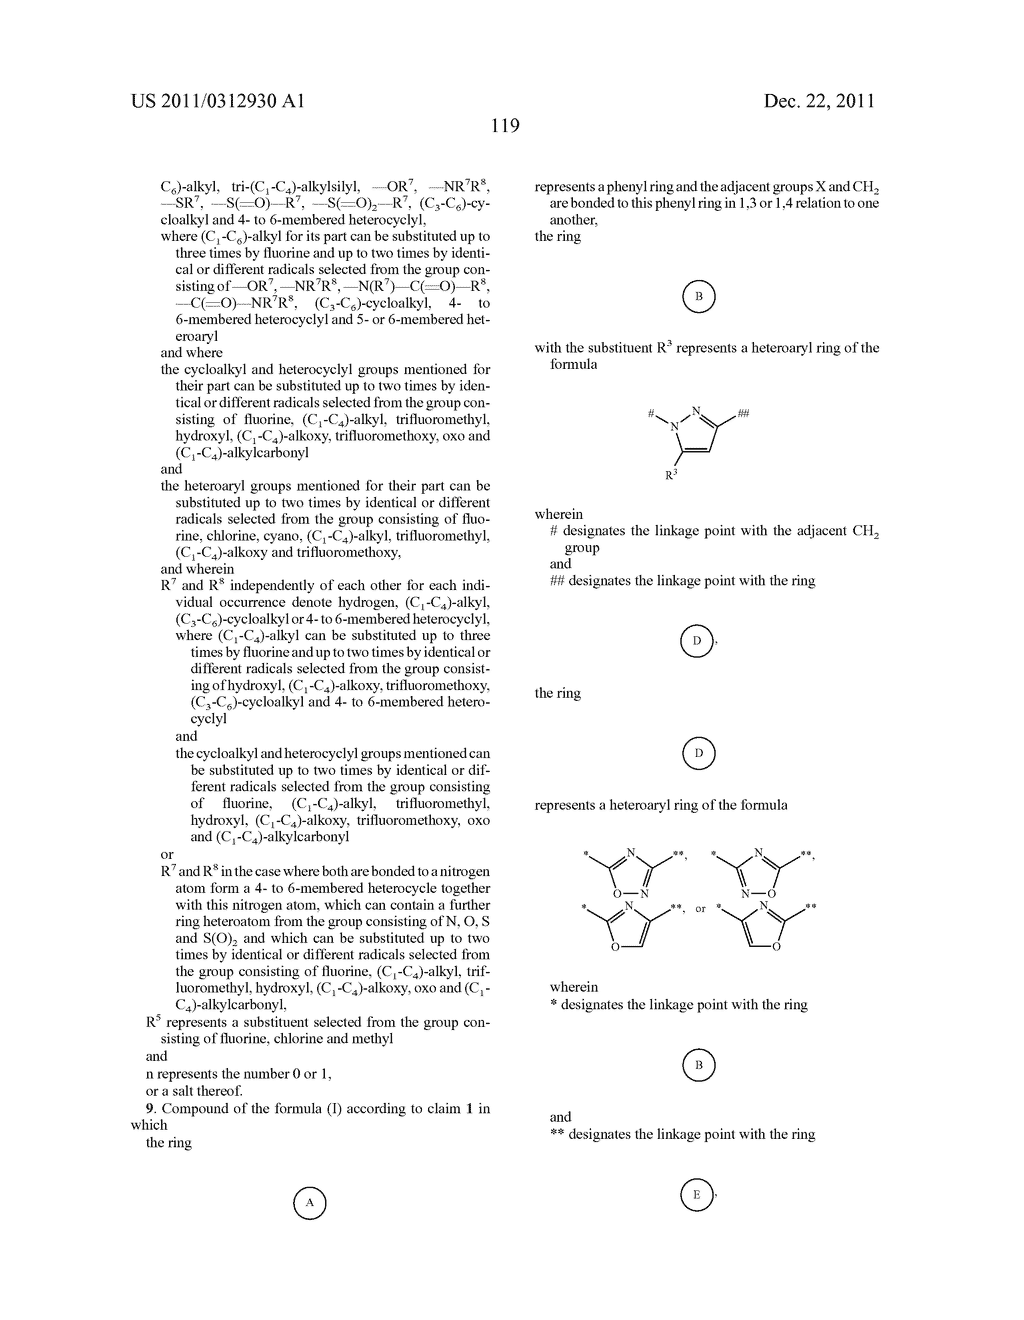 Aryl compounds with aminoalkyl substituents and their use - diagram, schematic, and image 120